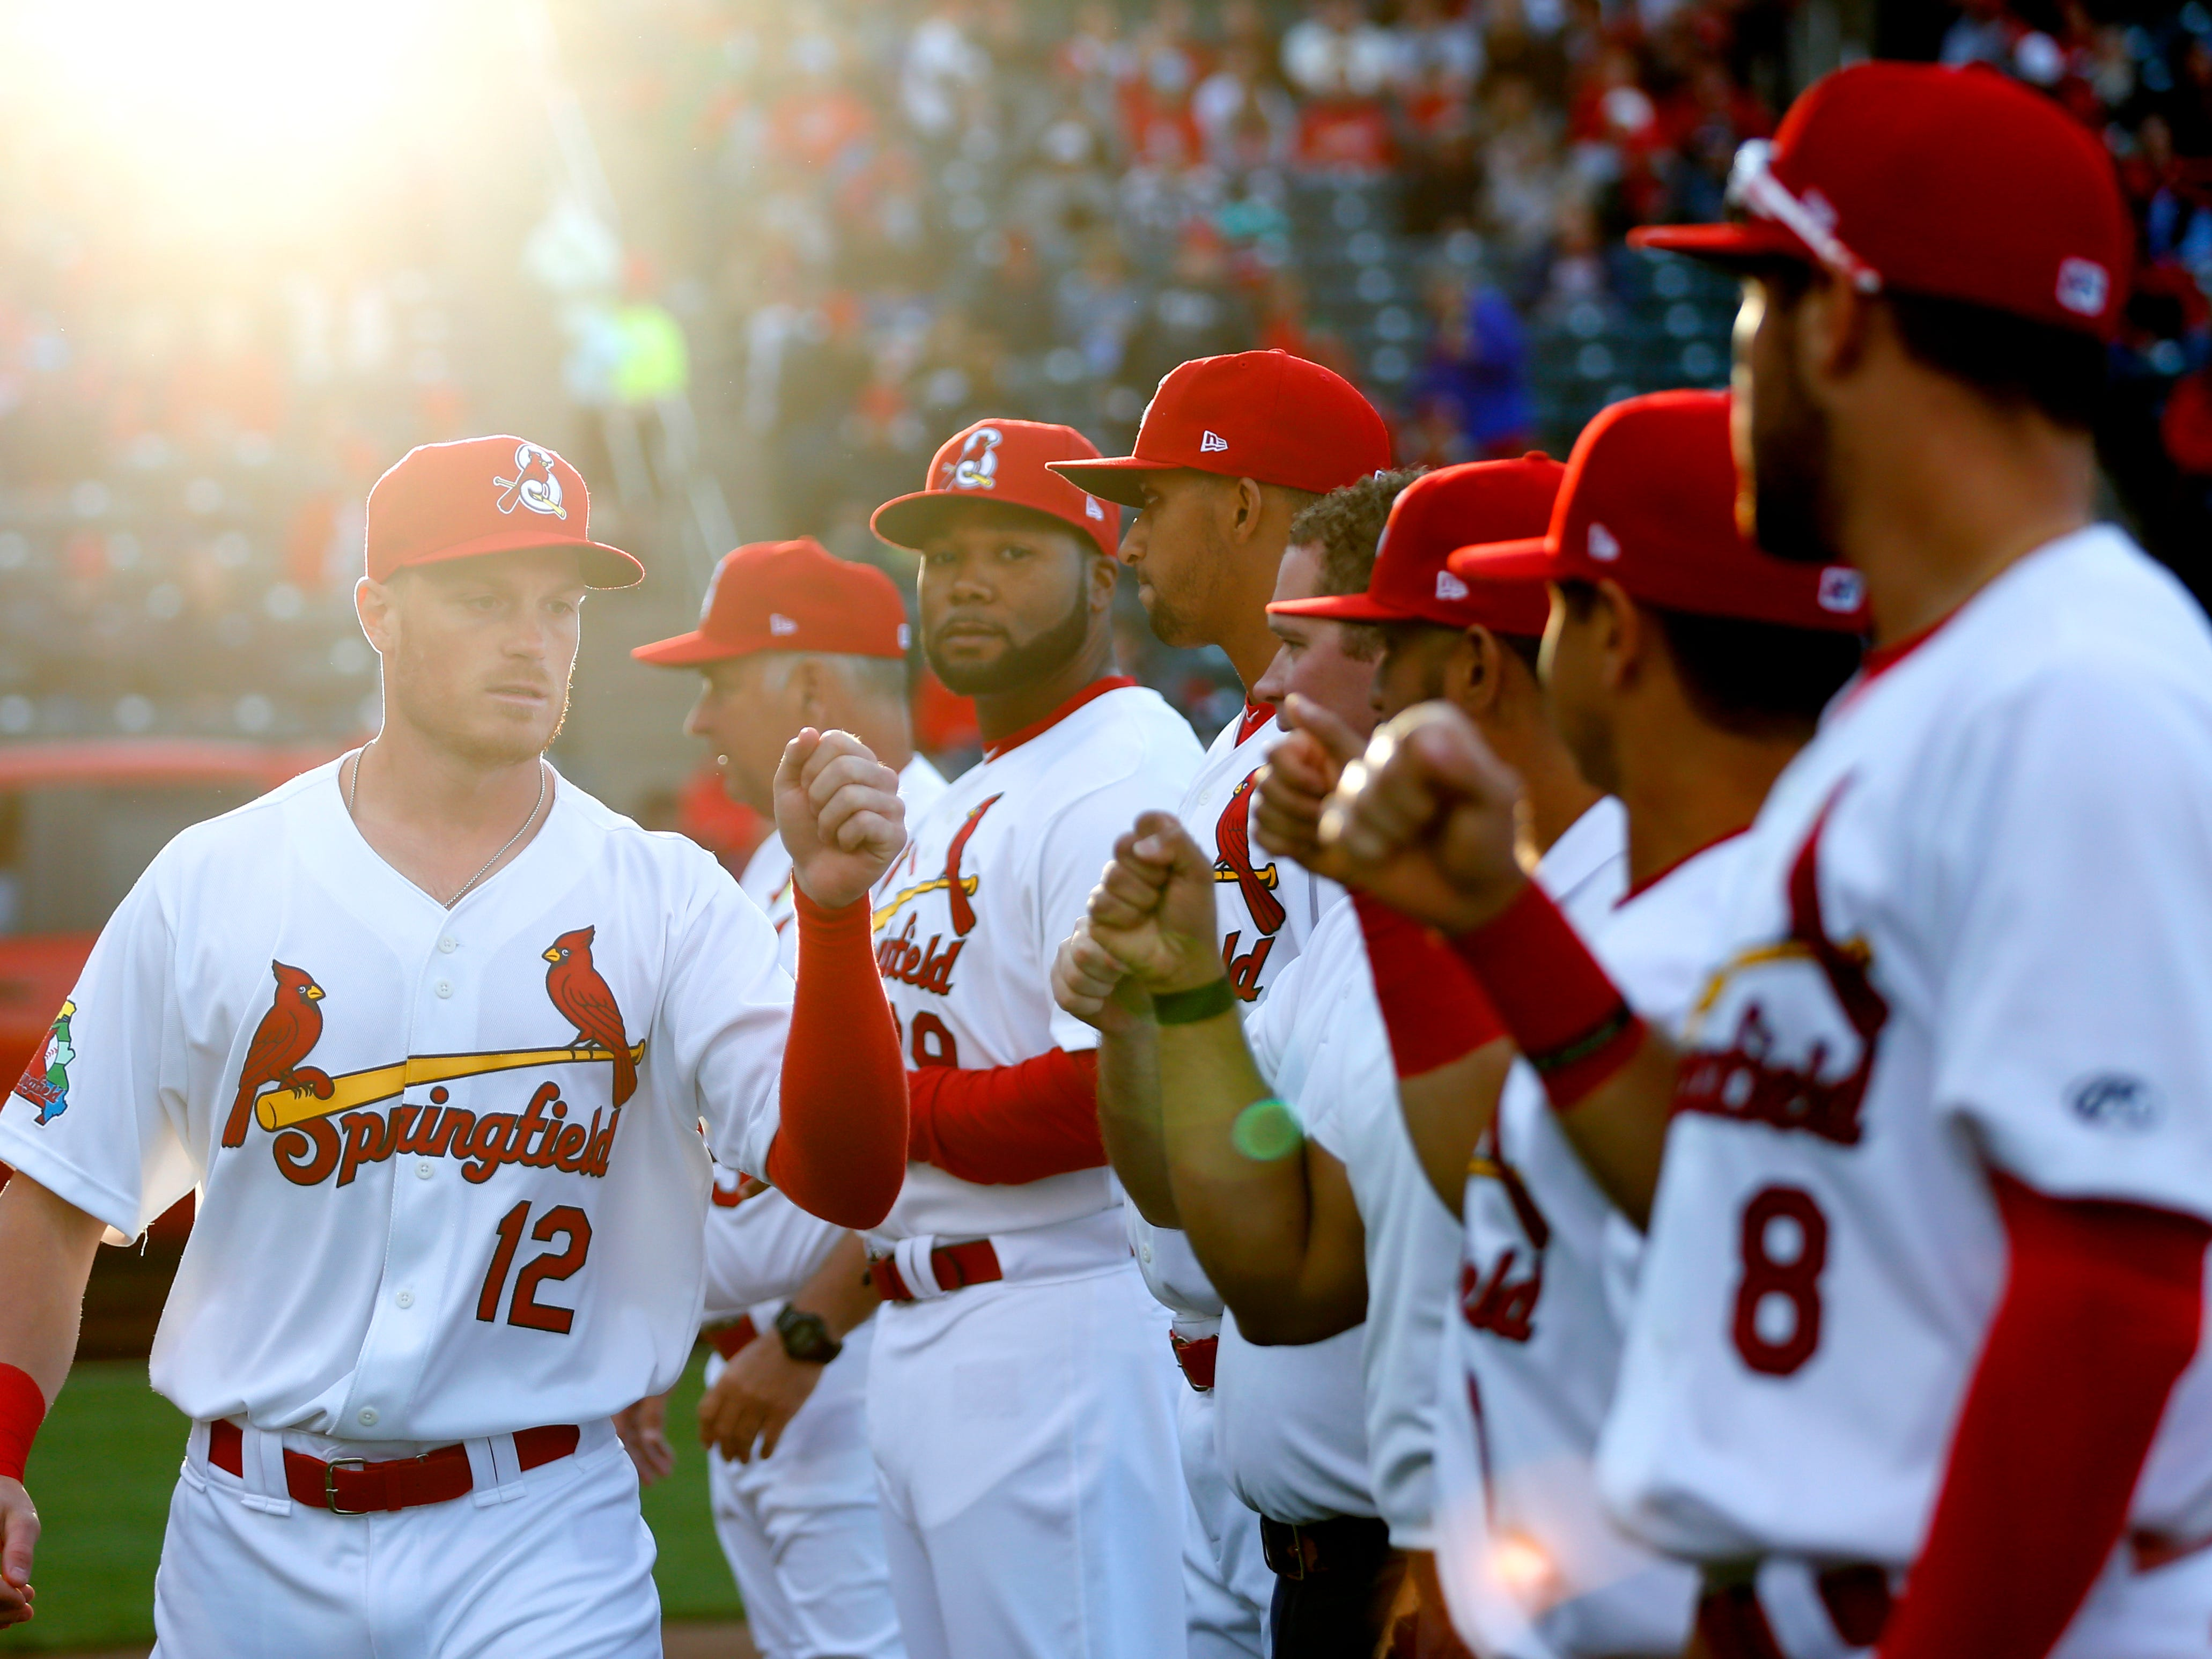 The Springfield Cardinals take on the Northwest Arkansas Naturals at Hammons Field on Thursday, April 11, 2019 during the Cardinals home opener.